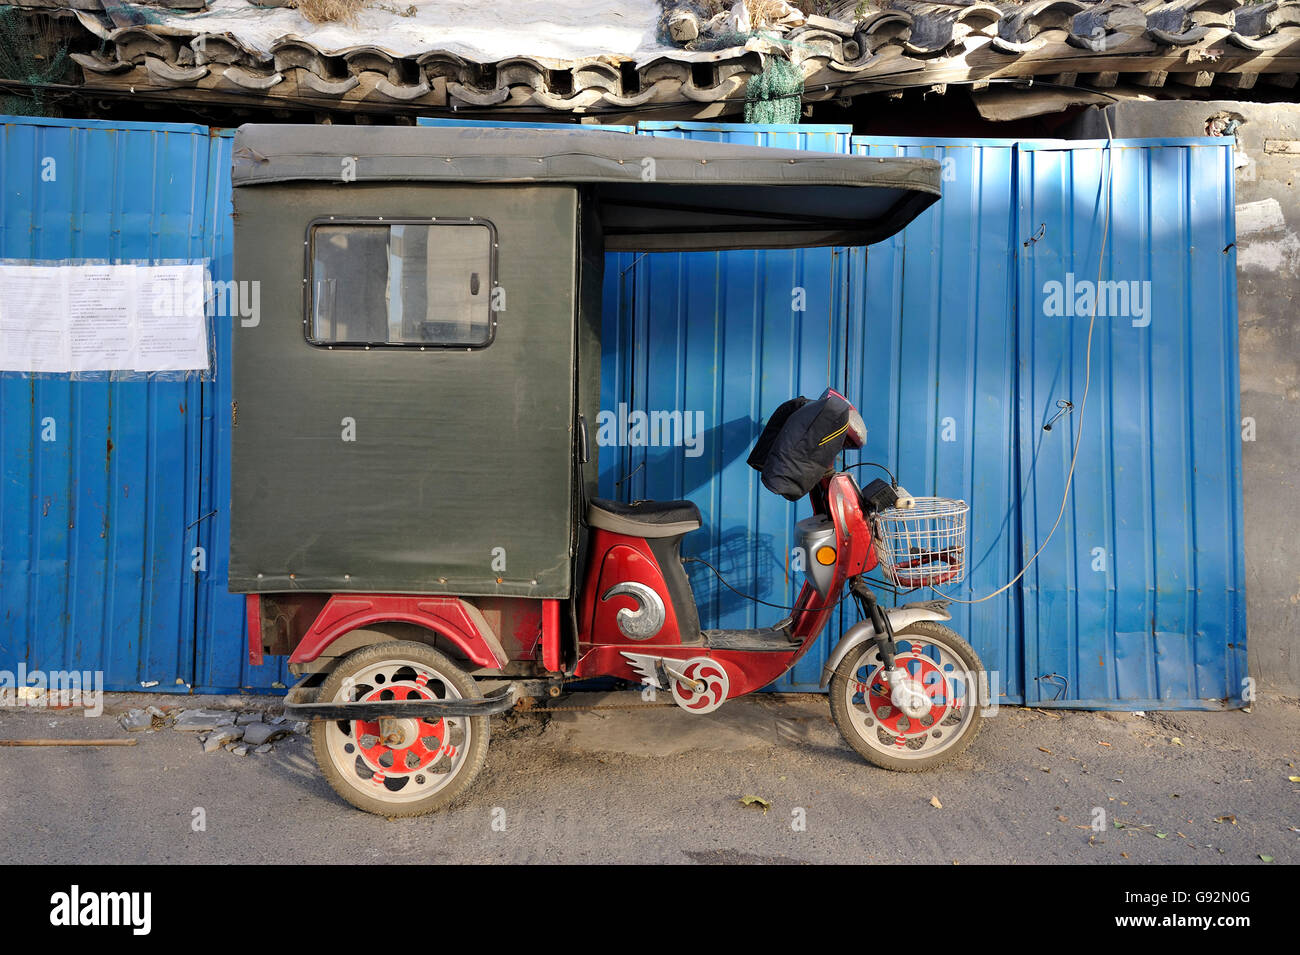 Rickshaw parked in a hutong in Beijing, China - Stock Image